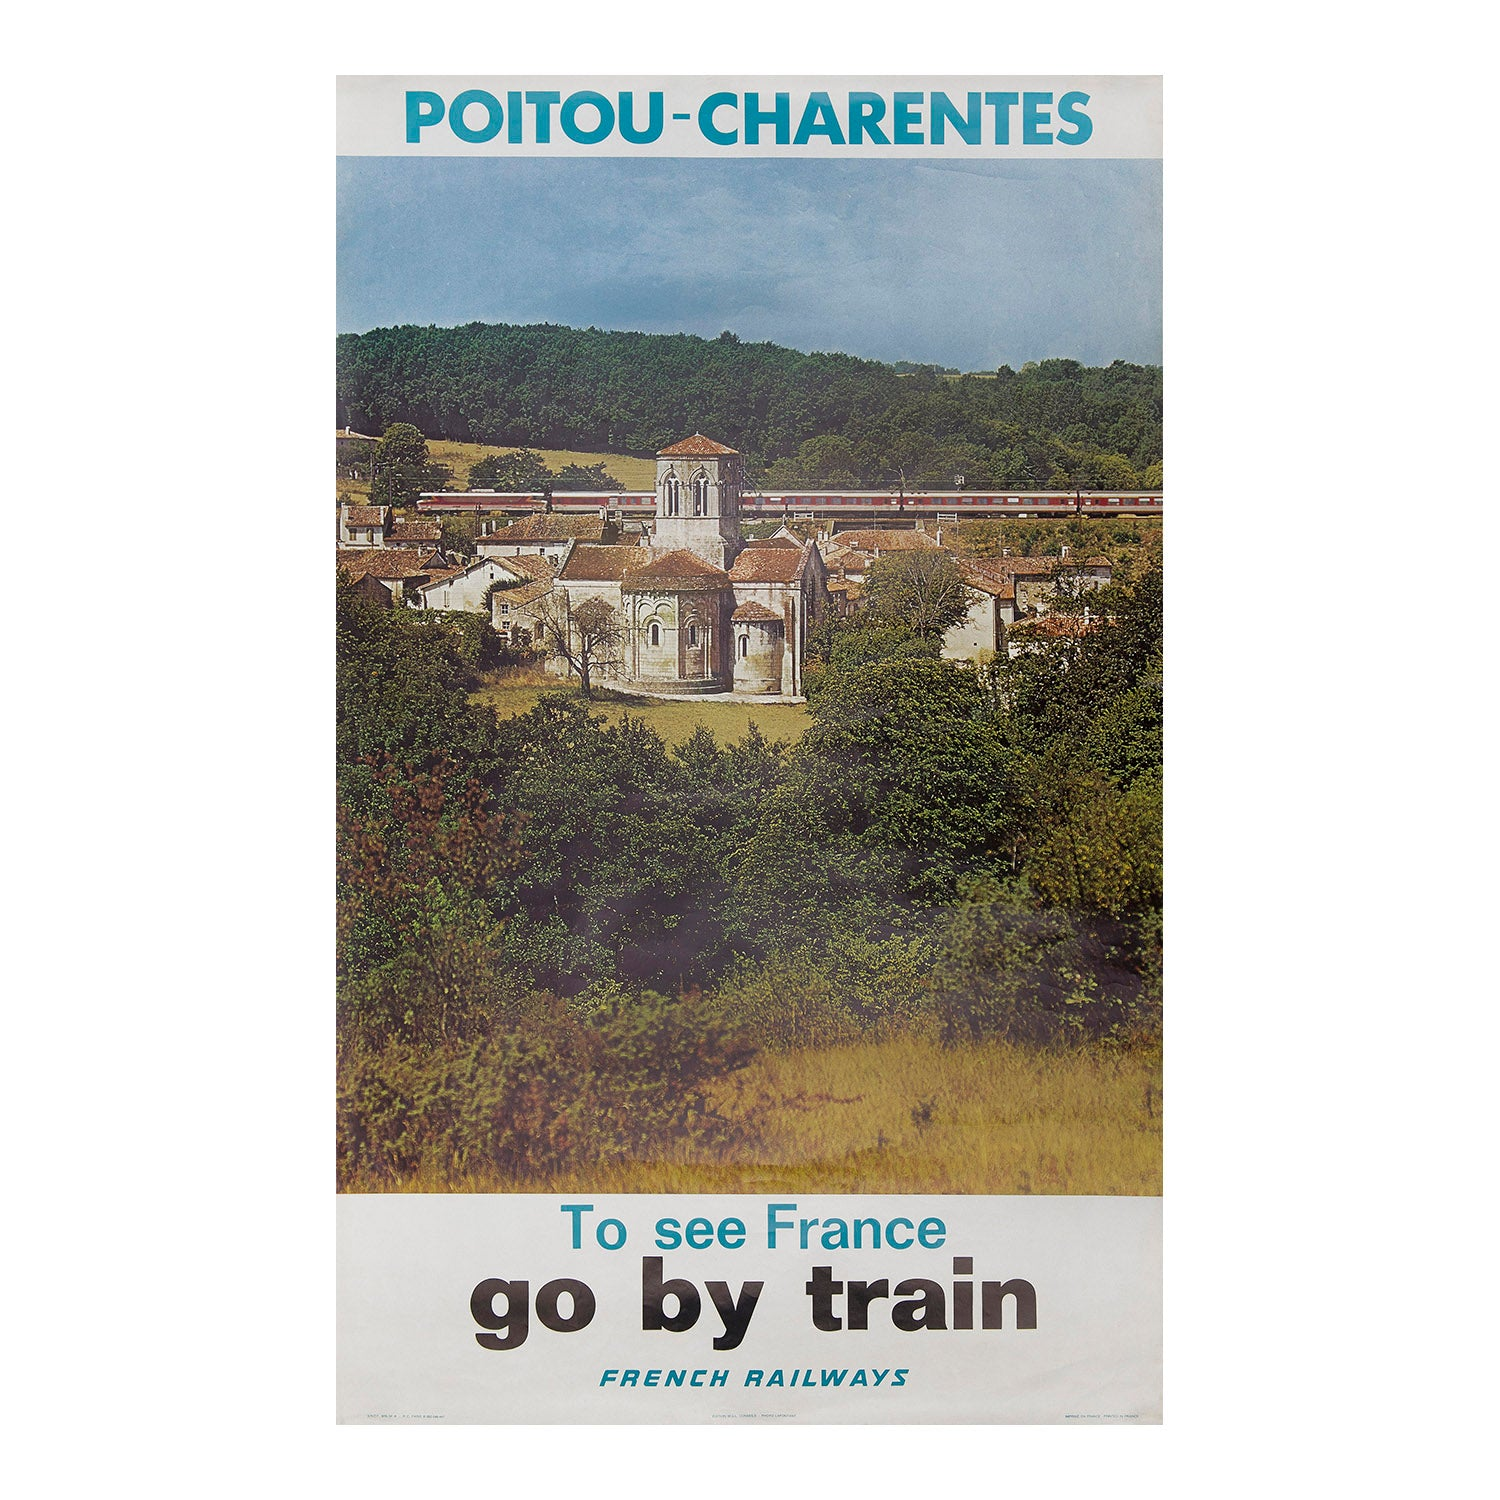 Poitou-Charentes. To see France go by train. French Railways